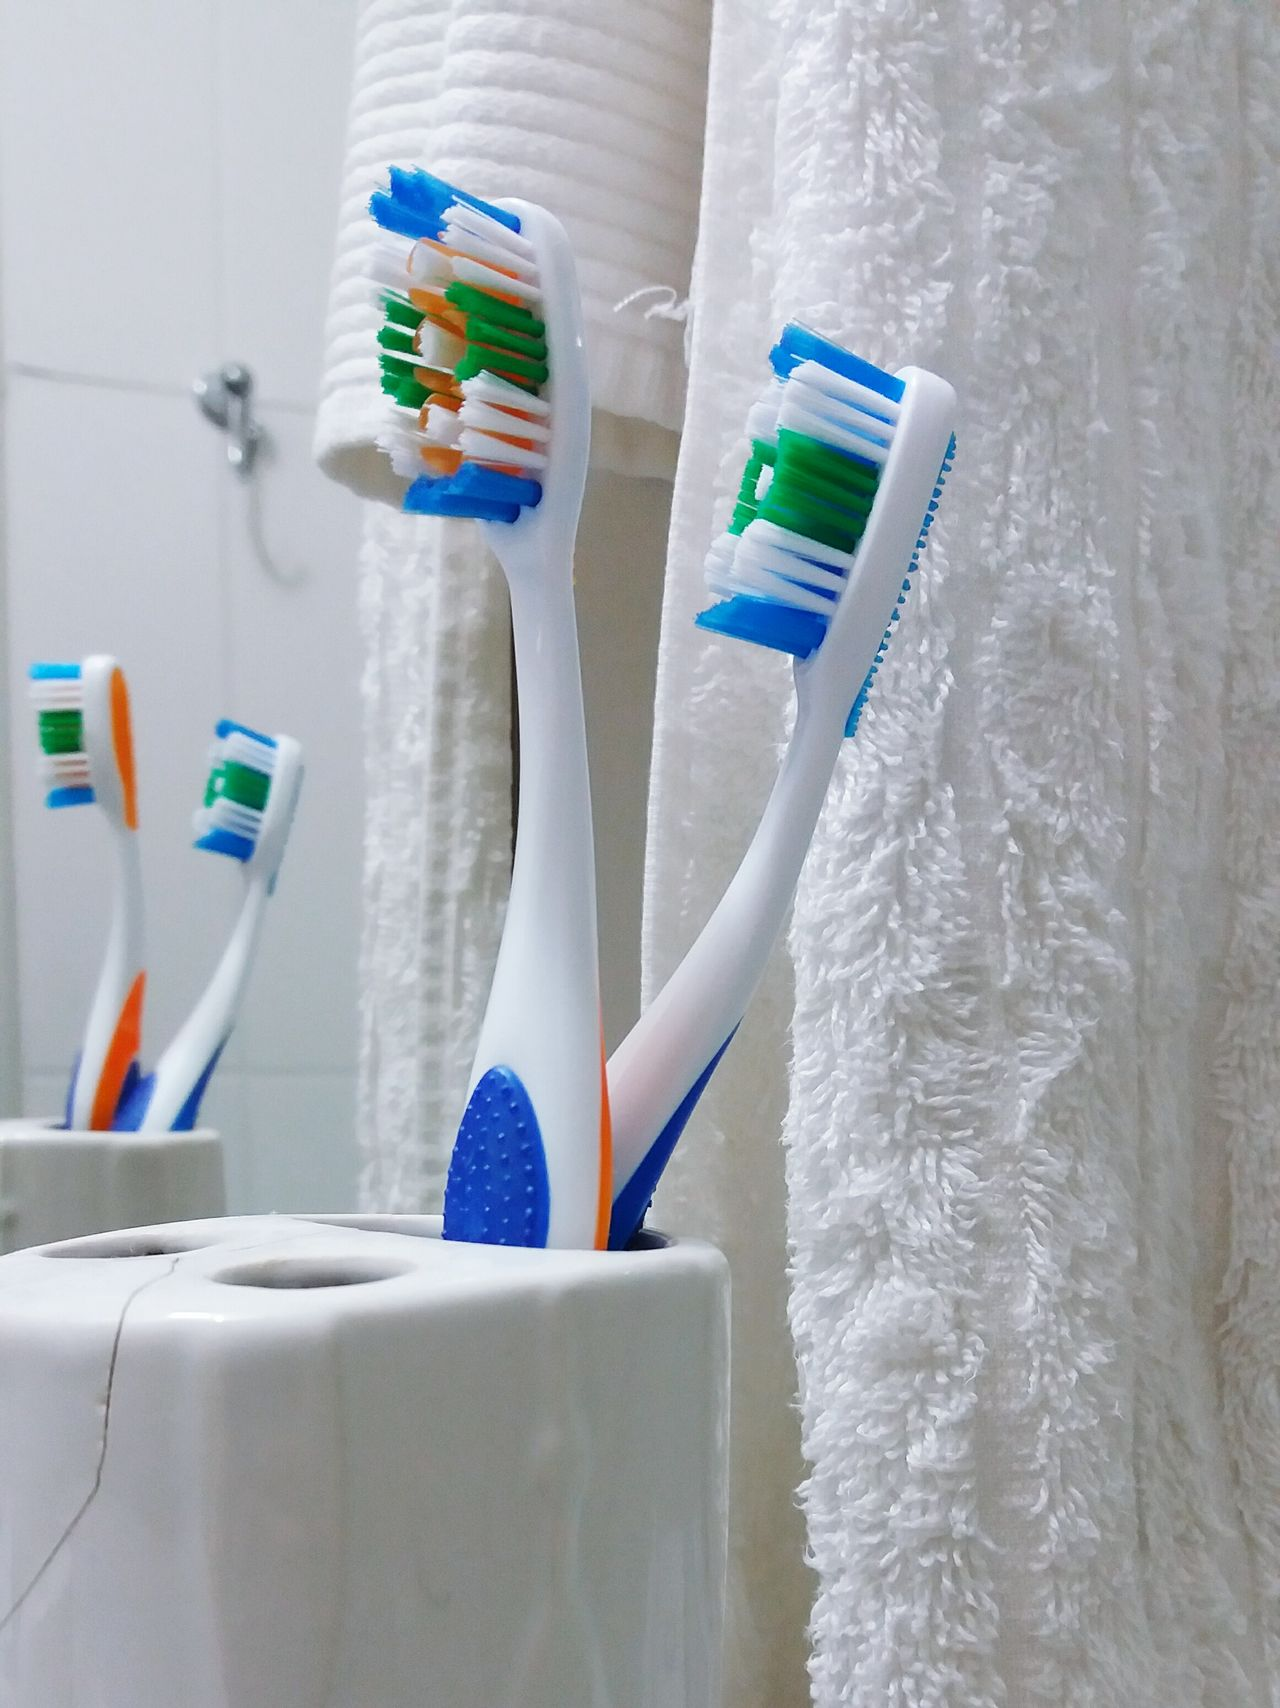 Toothbrushes Toothbrushing Juntando As Escovas Couples Shoot Bathroom Pic Sink Living Together In My House Marriage  Tie The Knot Interior Views